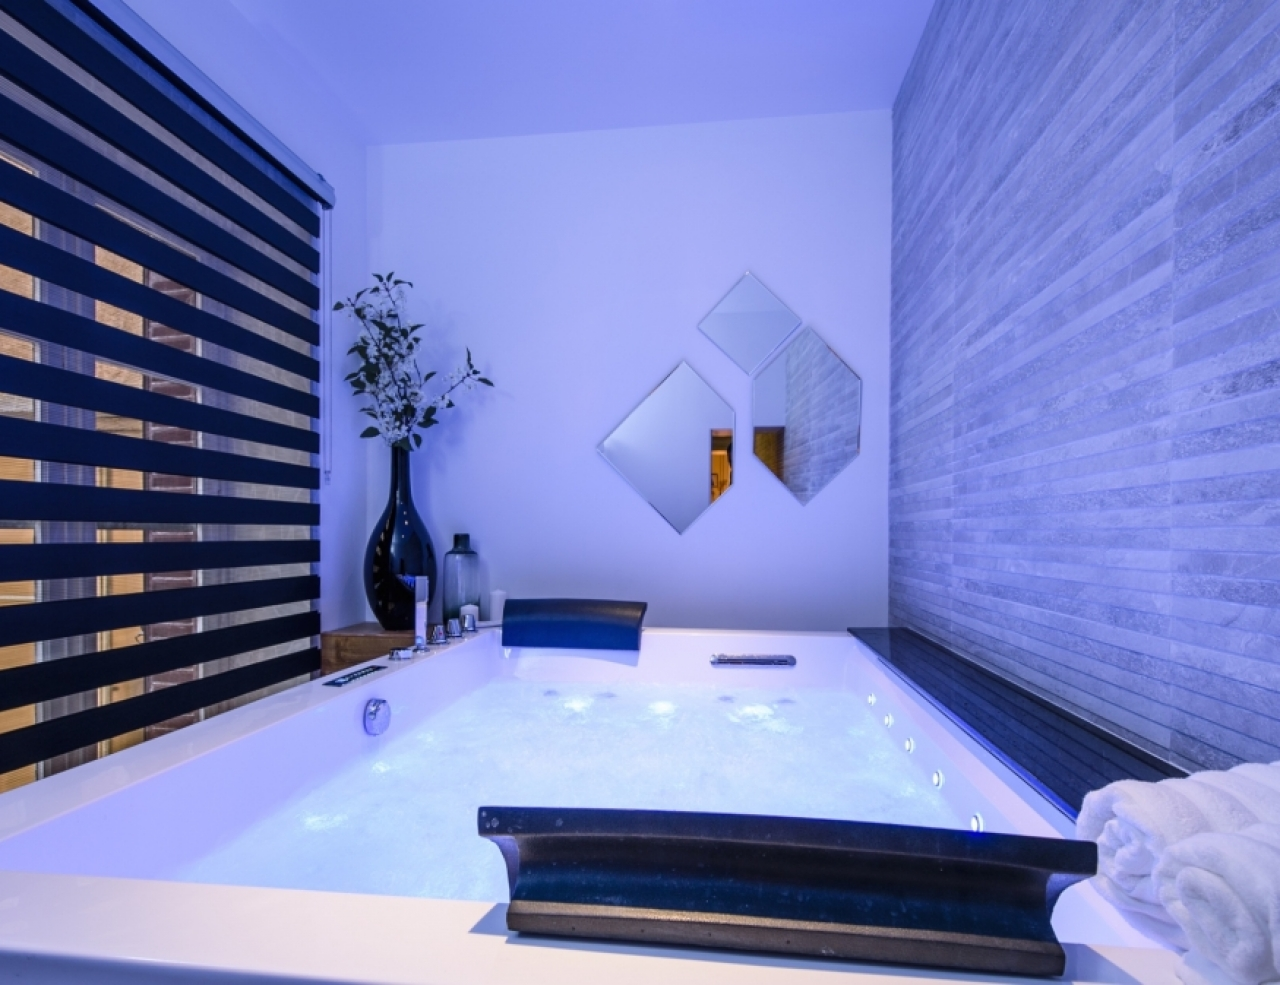 Hotel jacuzzi lyon pas cher for Hotel moins cher